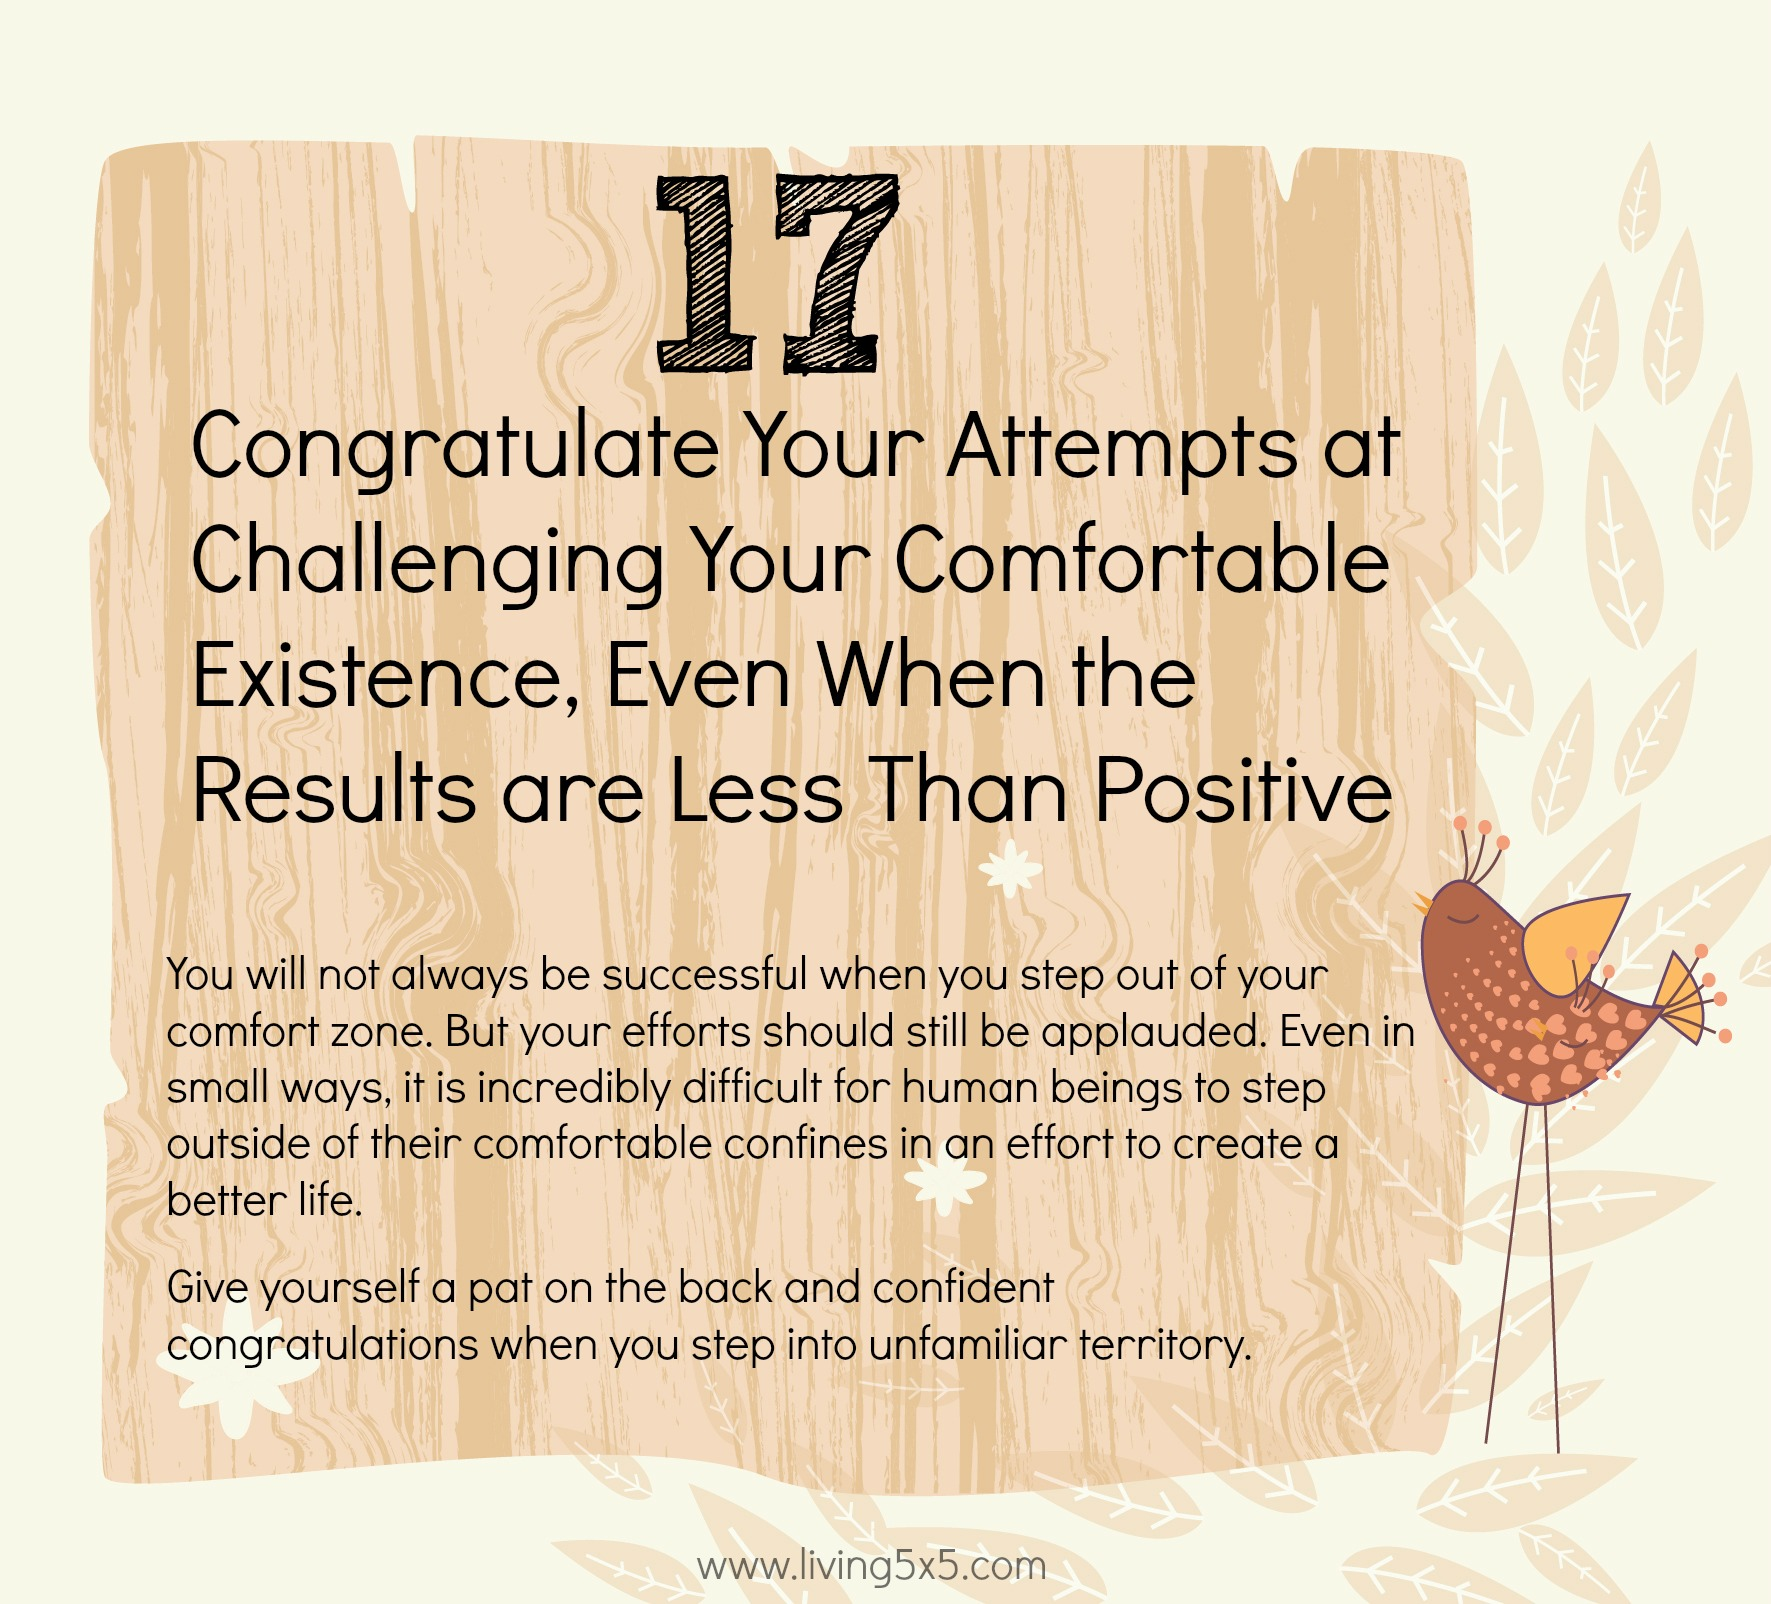 21 Ways To Step Outside Of Your Comfort Zone: #17 Congratulate your attempts at challenging your comfortable existence, even when the results are less than positive.